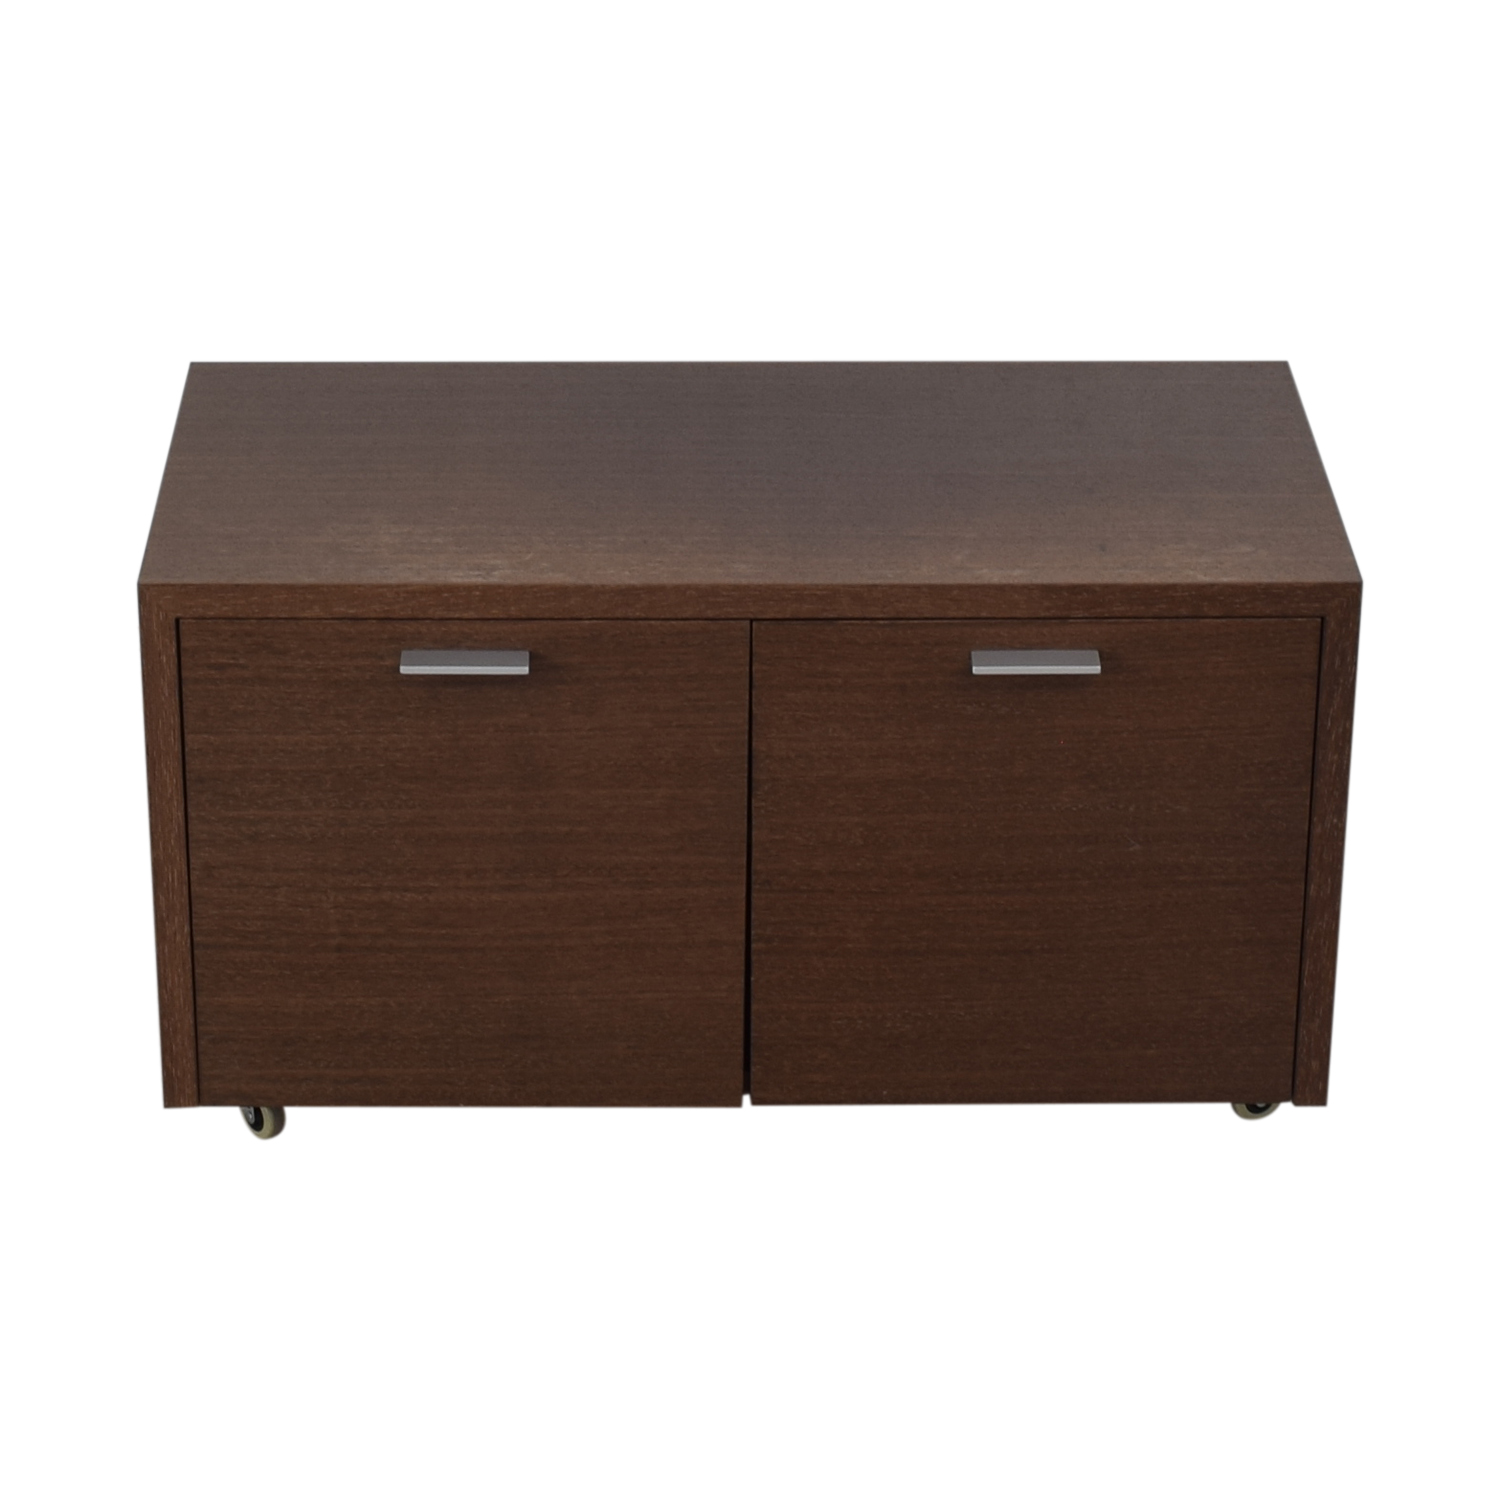 Design Within Reach Design Within Reach Credenza Sideboard on sale